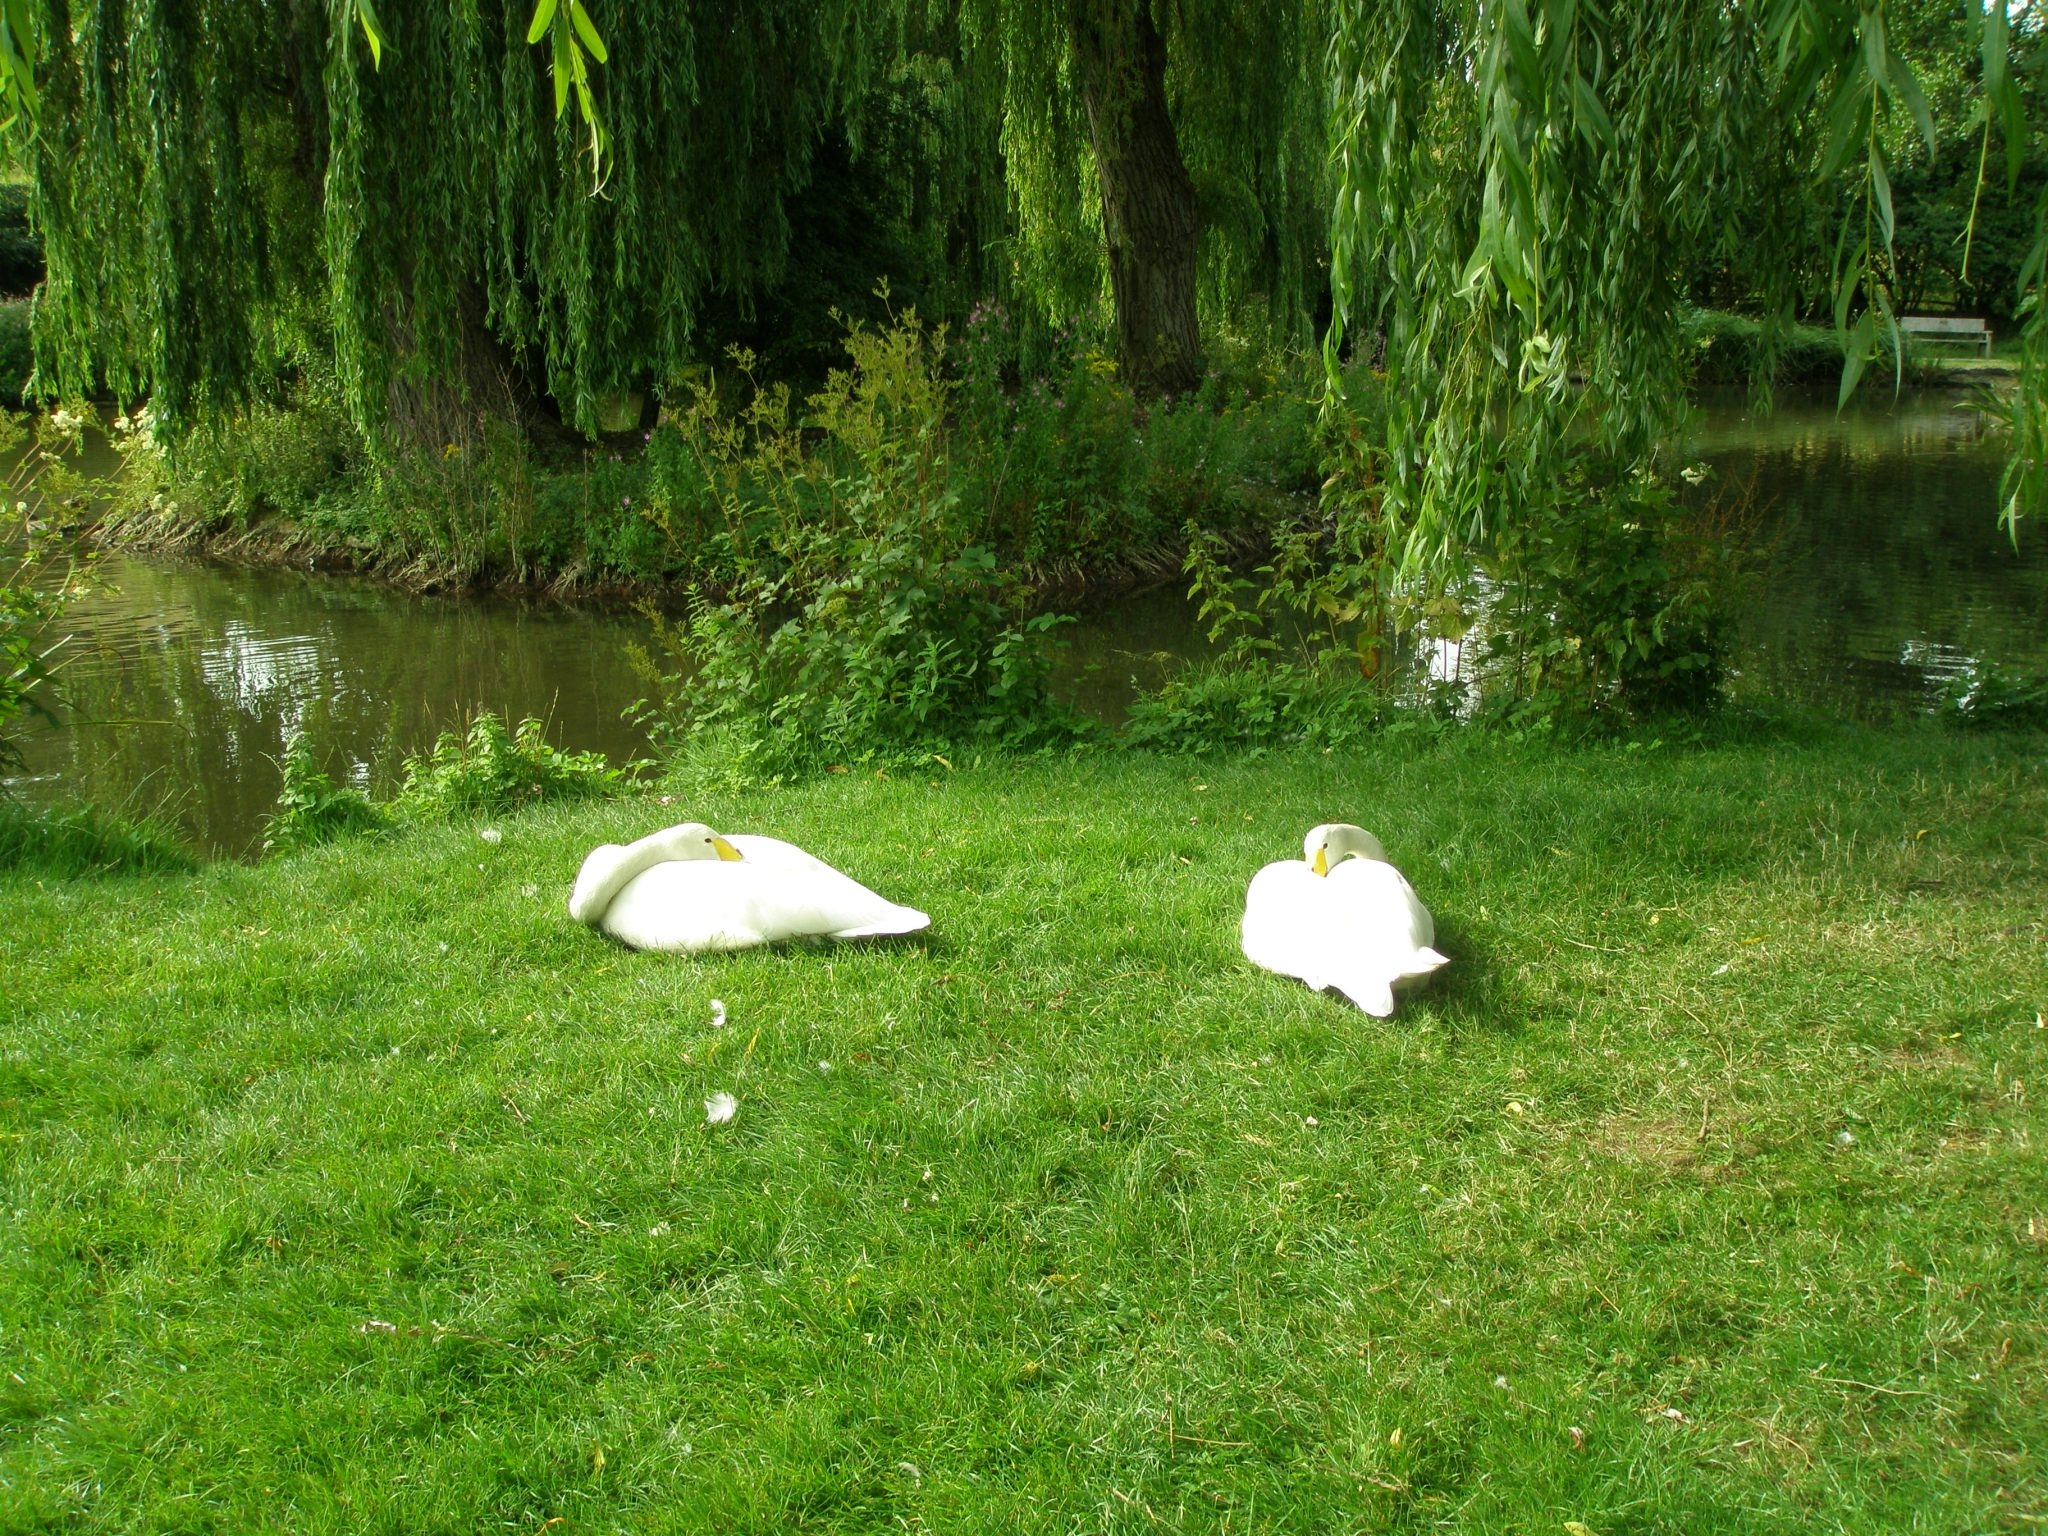 White Swans joined the feathered-throng.